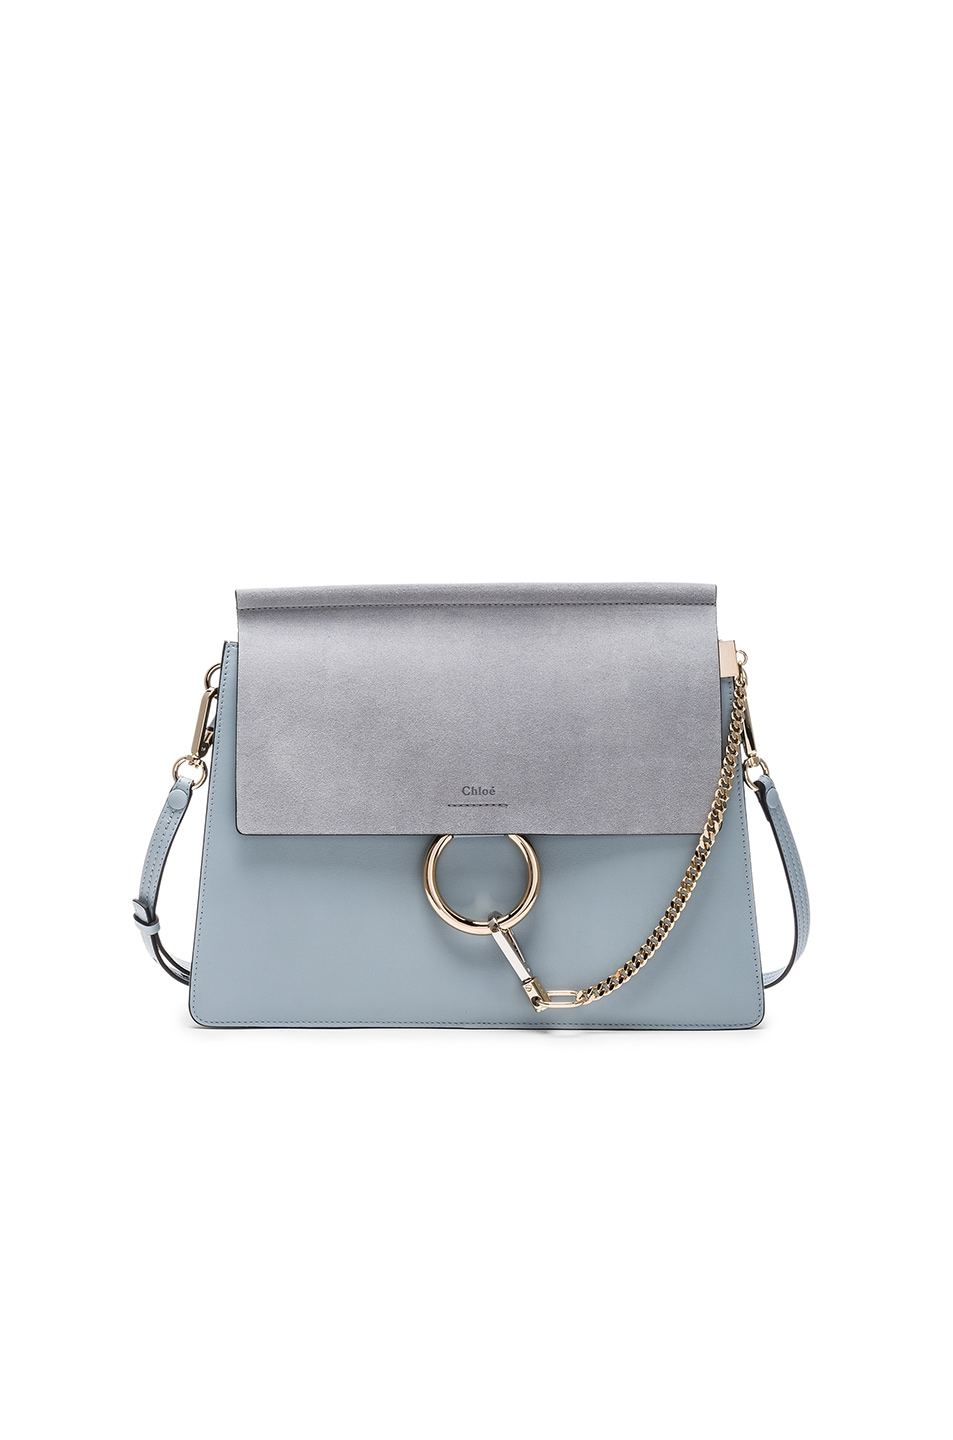 Image 1 of Chloe Medium Leather Faye Bag in Fresh Blue